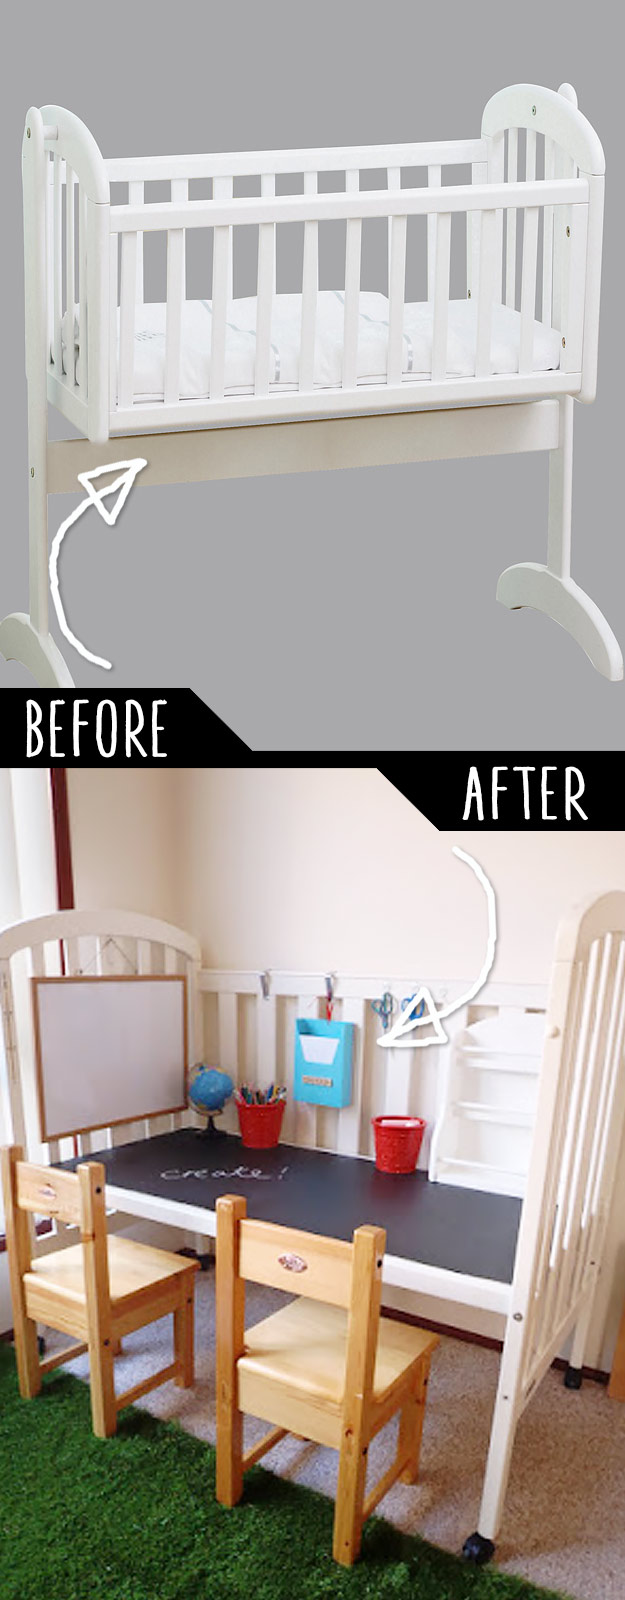 Diy Furniture Hacks Repurposed Cot Cool Ideas For Creative Do It Yourself Made